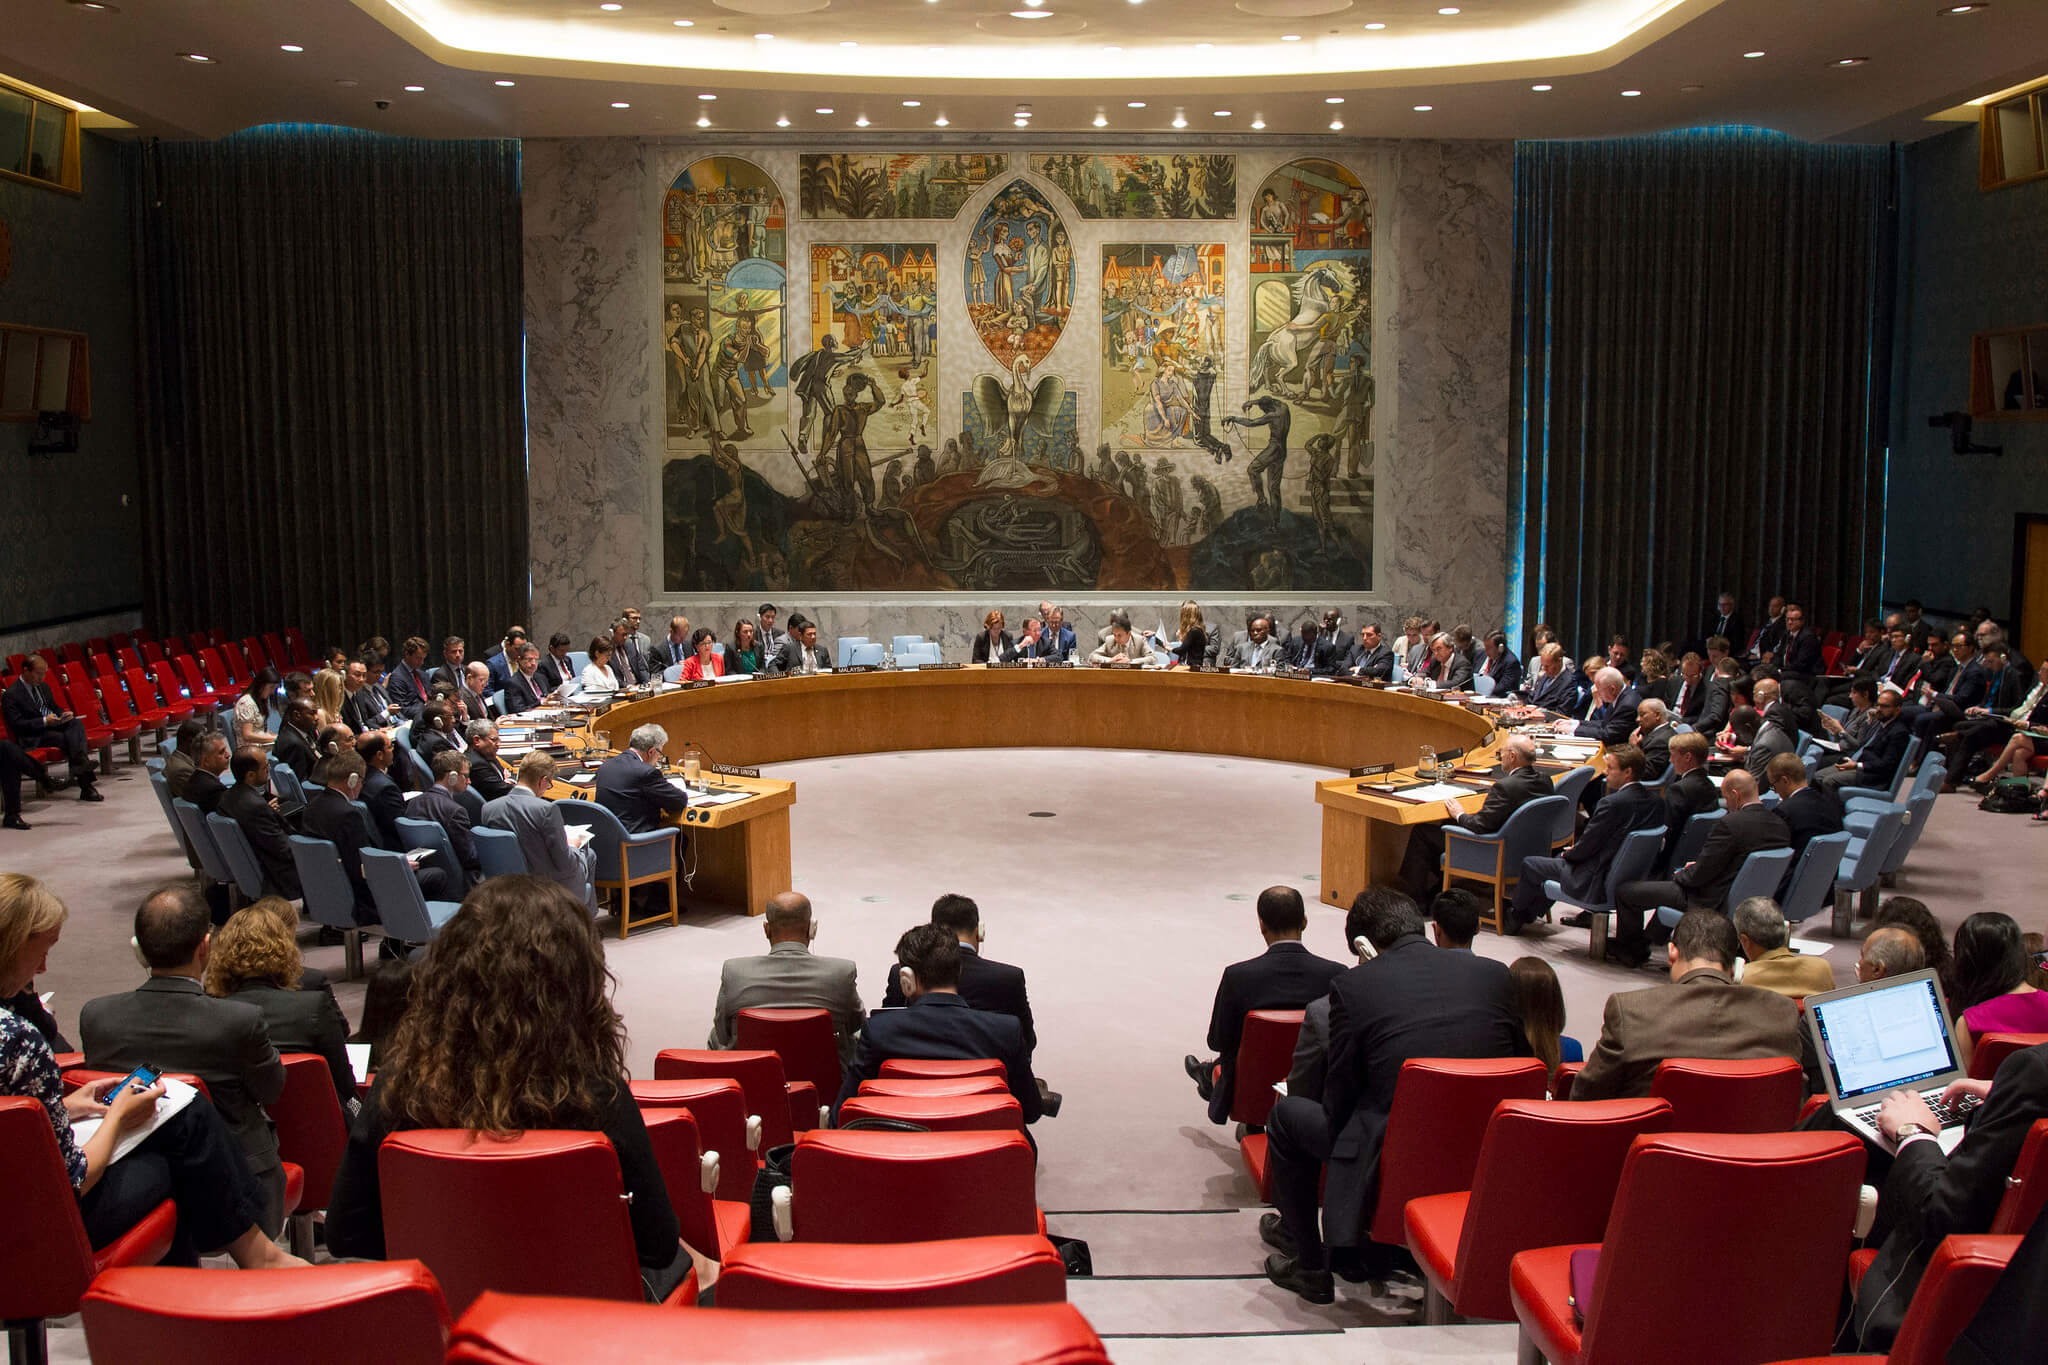 Erasto-The UN Security Council adopts the Resolution on a Joint Comprehensive Plan of Action (JCPOA) regarding Iran's nuclear programme on July 12 2015. UN Photo